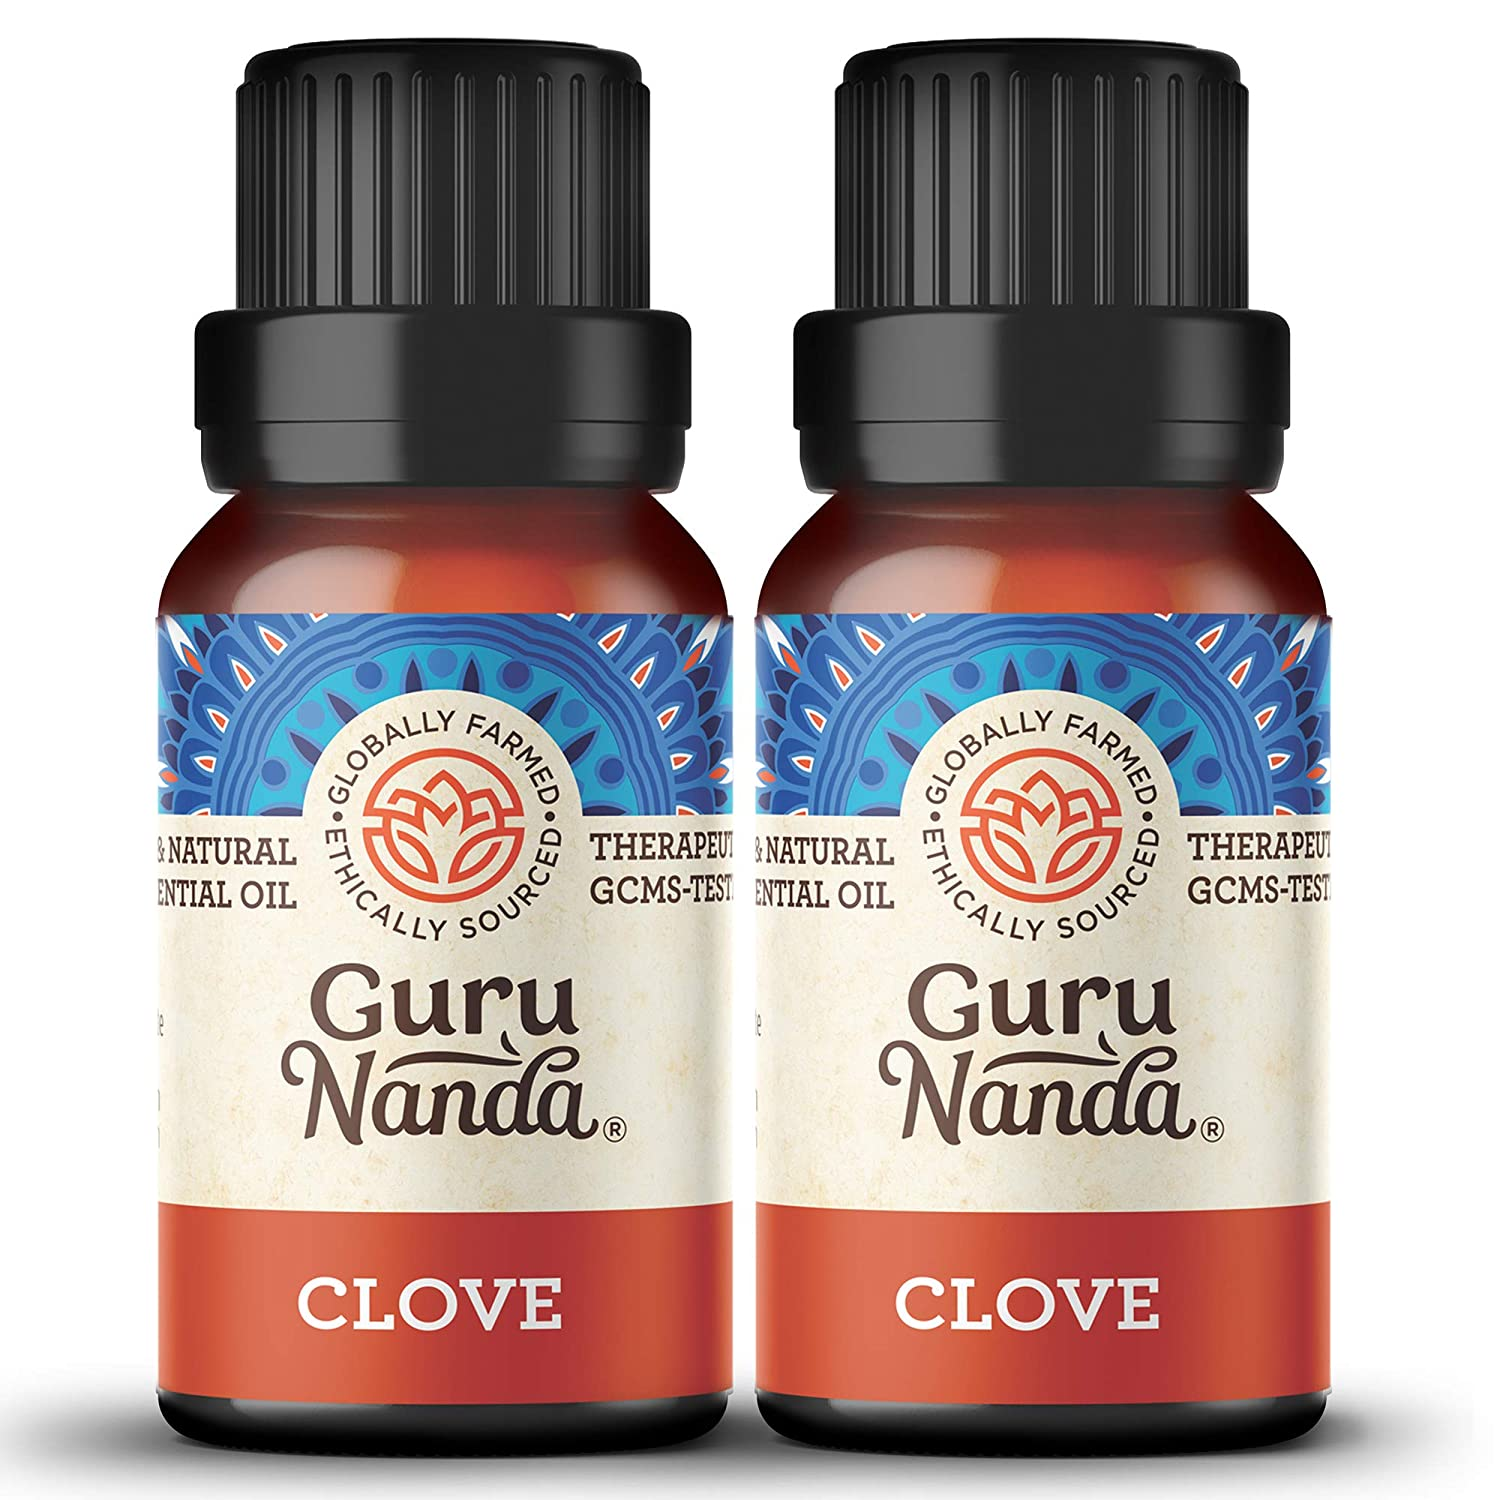 GuruNanda Clove Essential Oil (2 Pack) - 100% Pure Therapeutic Grade, Natural Healing Oil for Oral and Dental Care, Use in Diffuser for Invigorating Spicy Scent (15 ml x 2)